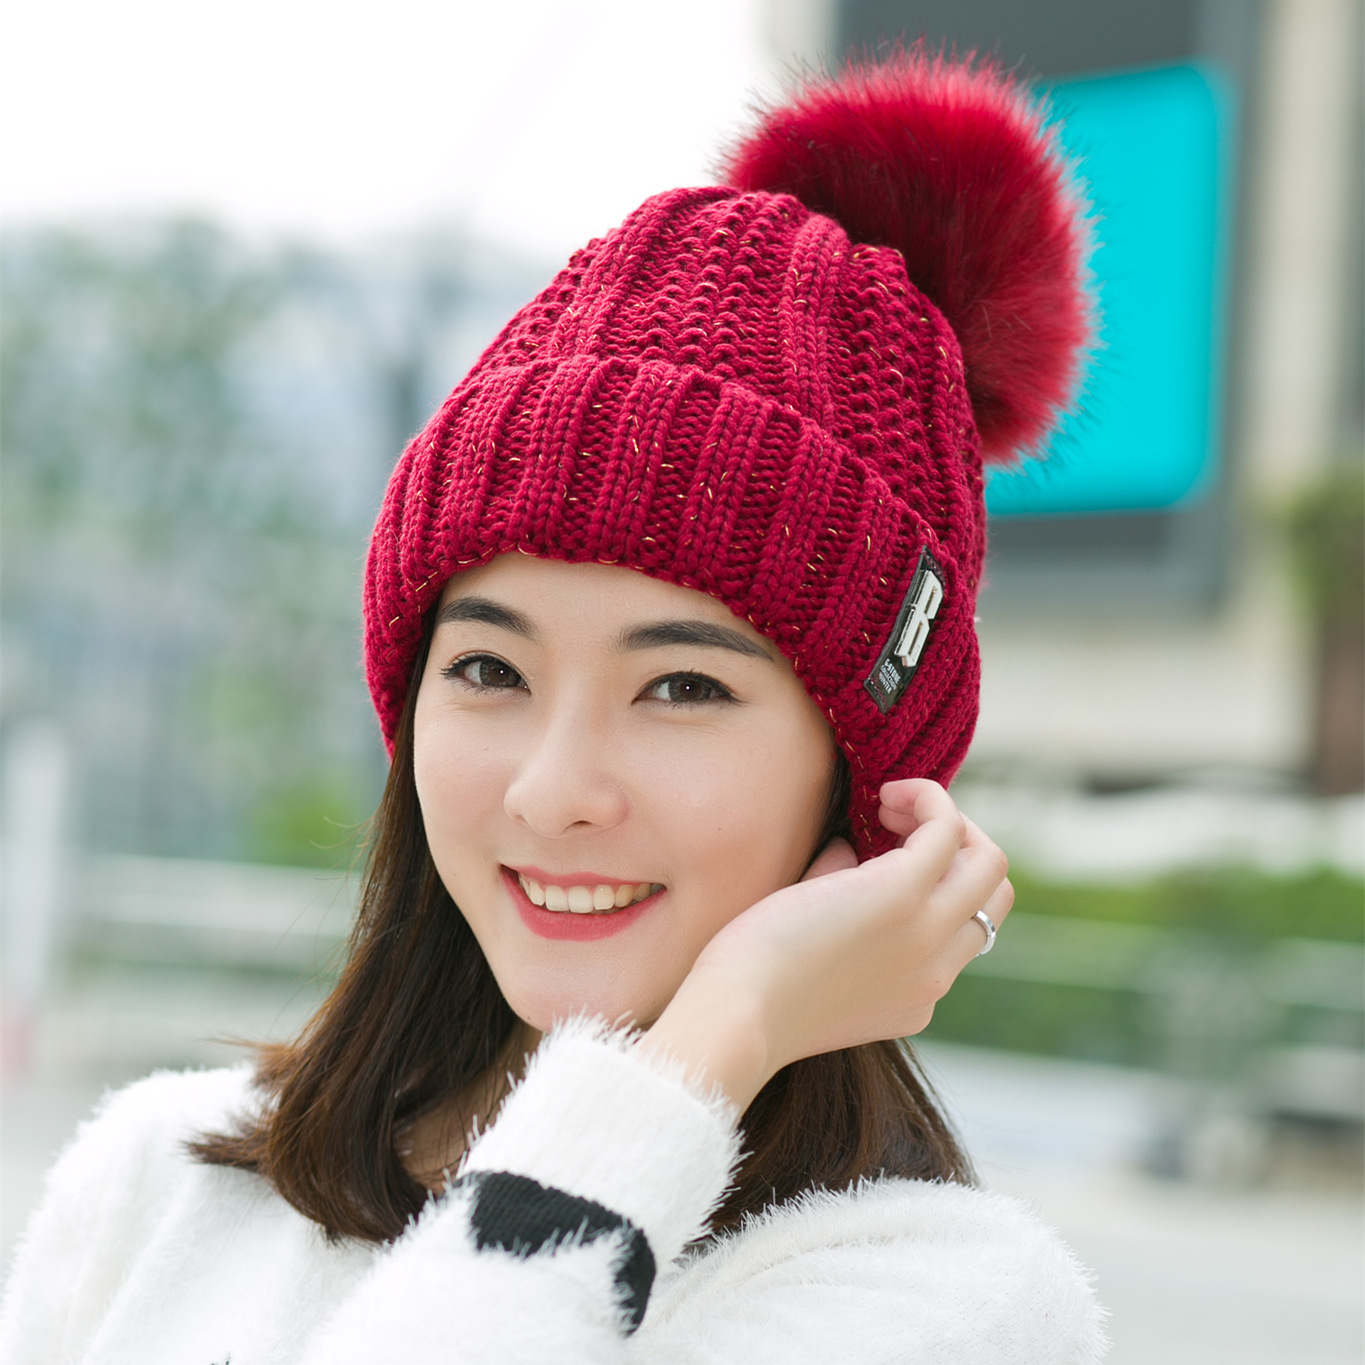 VEITHDIA 2019 New Pom Poms Winter Hat For Women Fashion Solid Warm Hats Knitted Beanies Cap Brand Thick Female Cap Wholesale